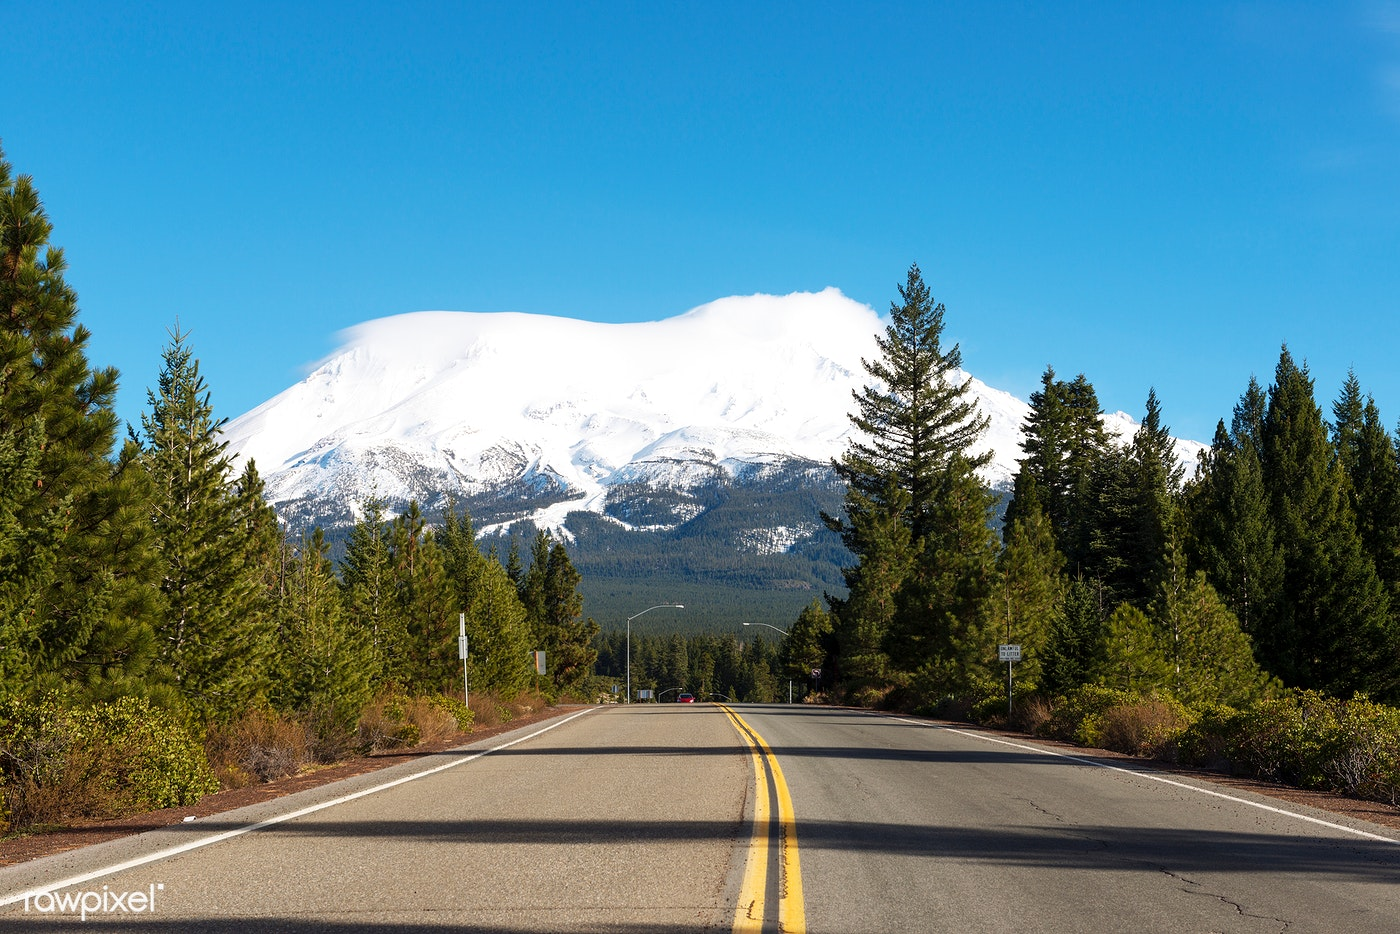 Soaring Mount Shasta is visible from miles away in north-central California. Original image from Carol M. Highsmith's...